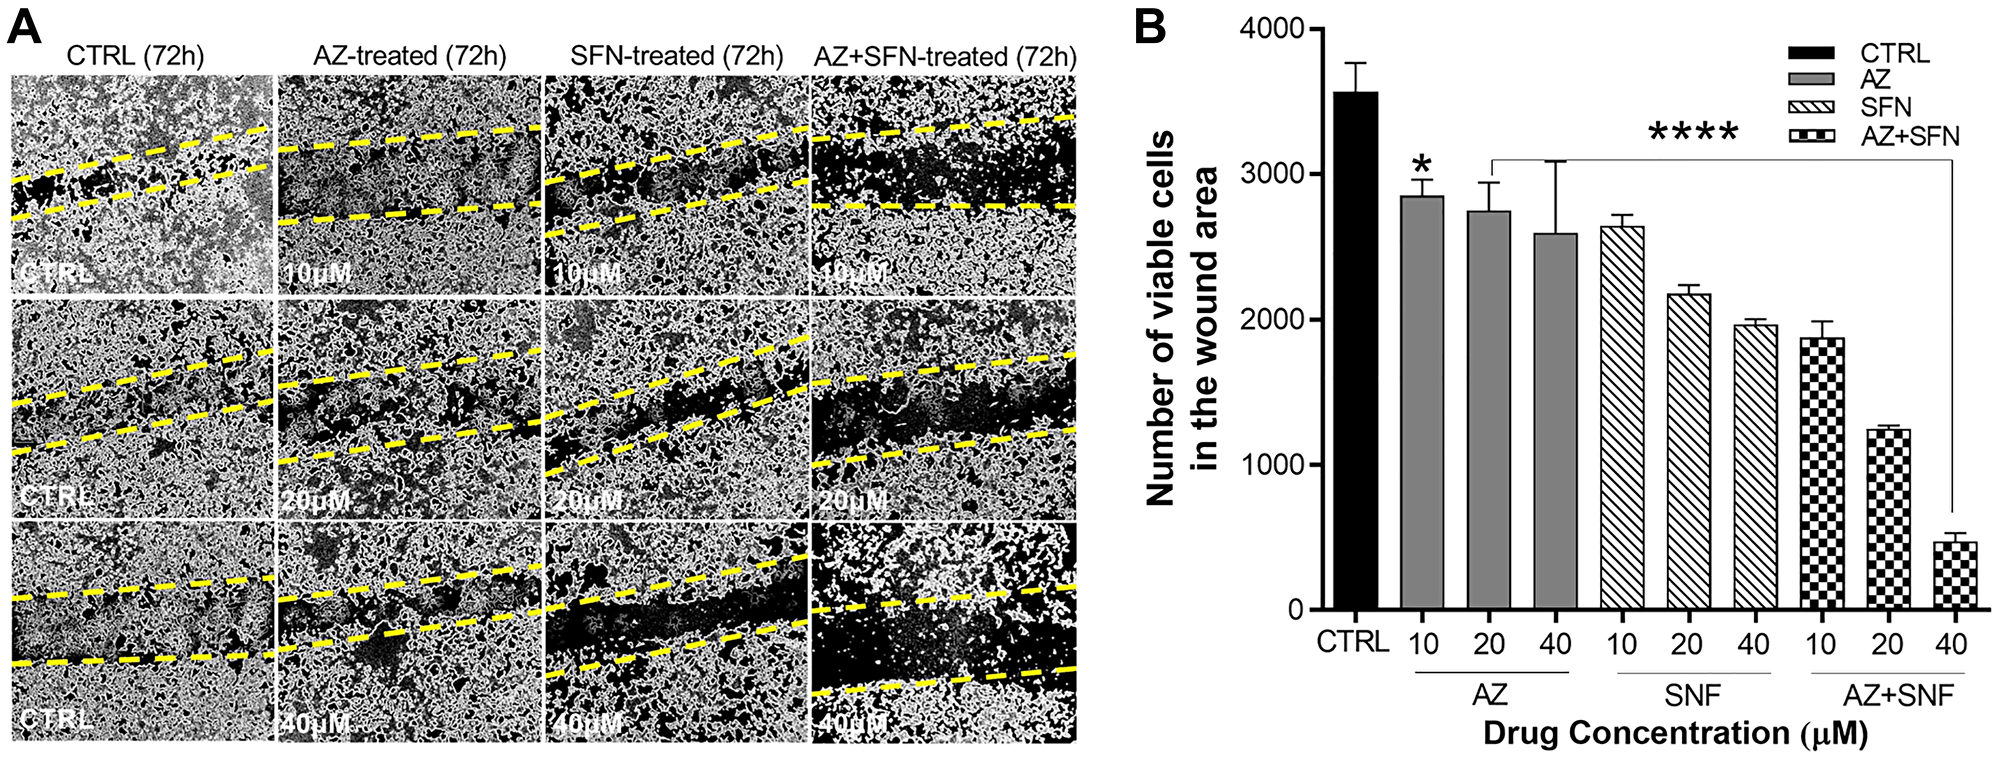 AZ, SFN, and the combination of AZ+SFN dose-dependently block the wound closure ability of typical H727 BC cells using the scratch wound assay.